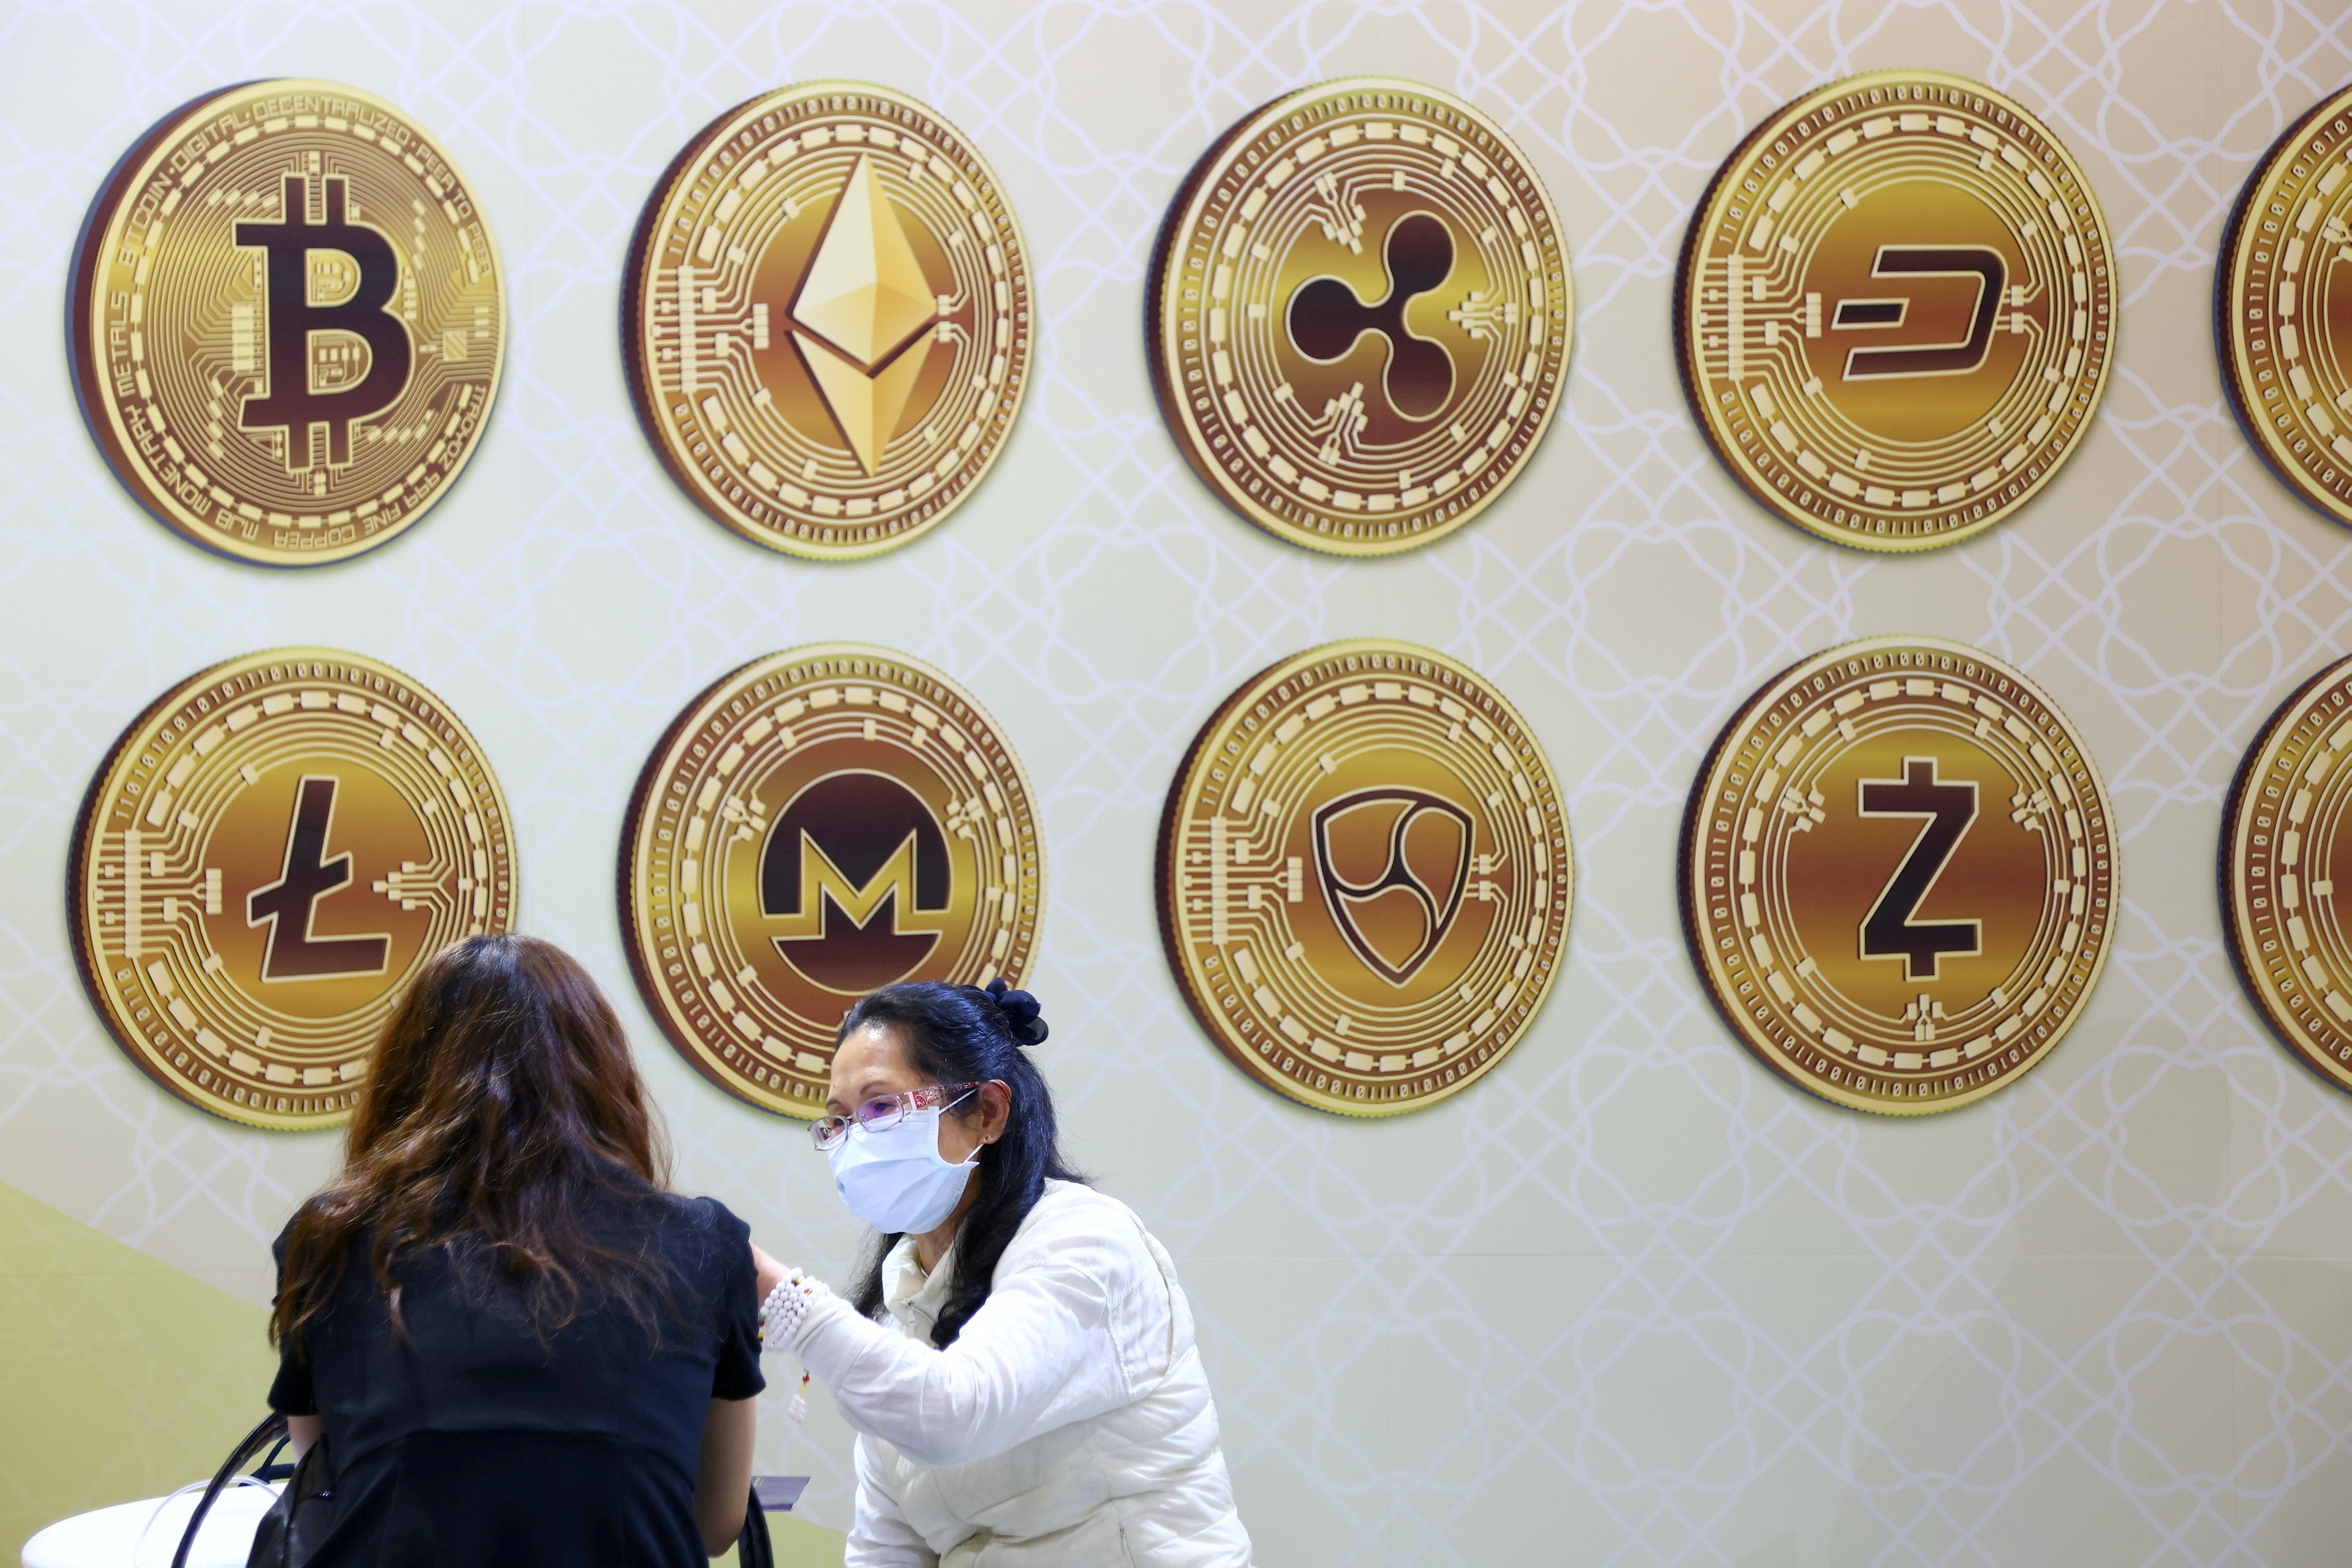 FILE PHOTO: Customers talk against a backboard with signs of cryptocurrency during 2020 Taipei International Finance Expo in Taipei, Taiwan, November 27, 2020. REUTERS/Ann Wang/File Photo